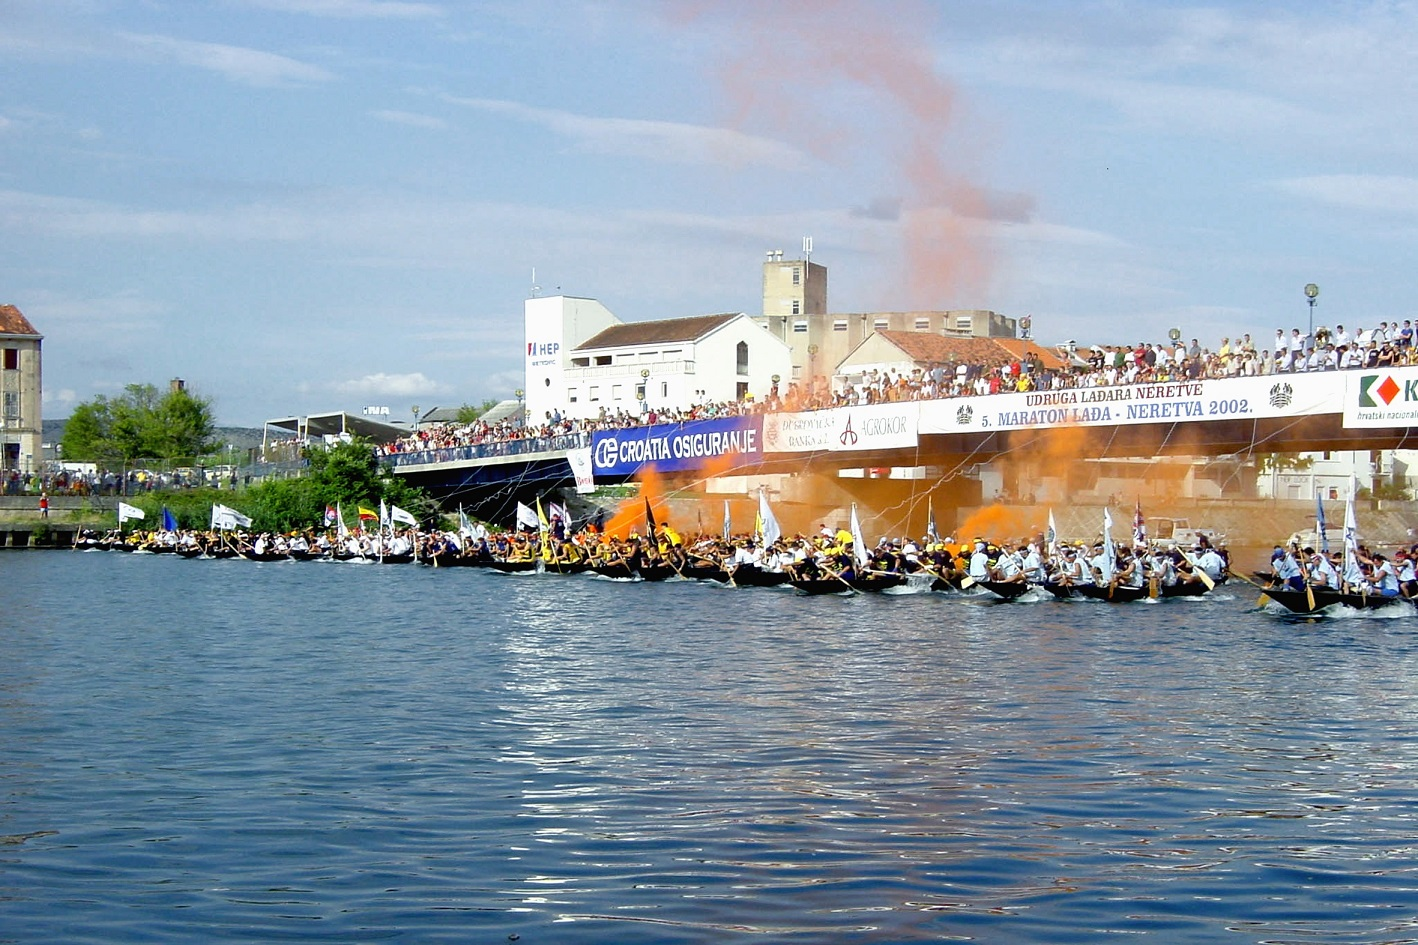 Festive scene of boats preparing for race